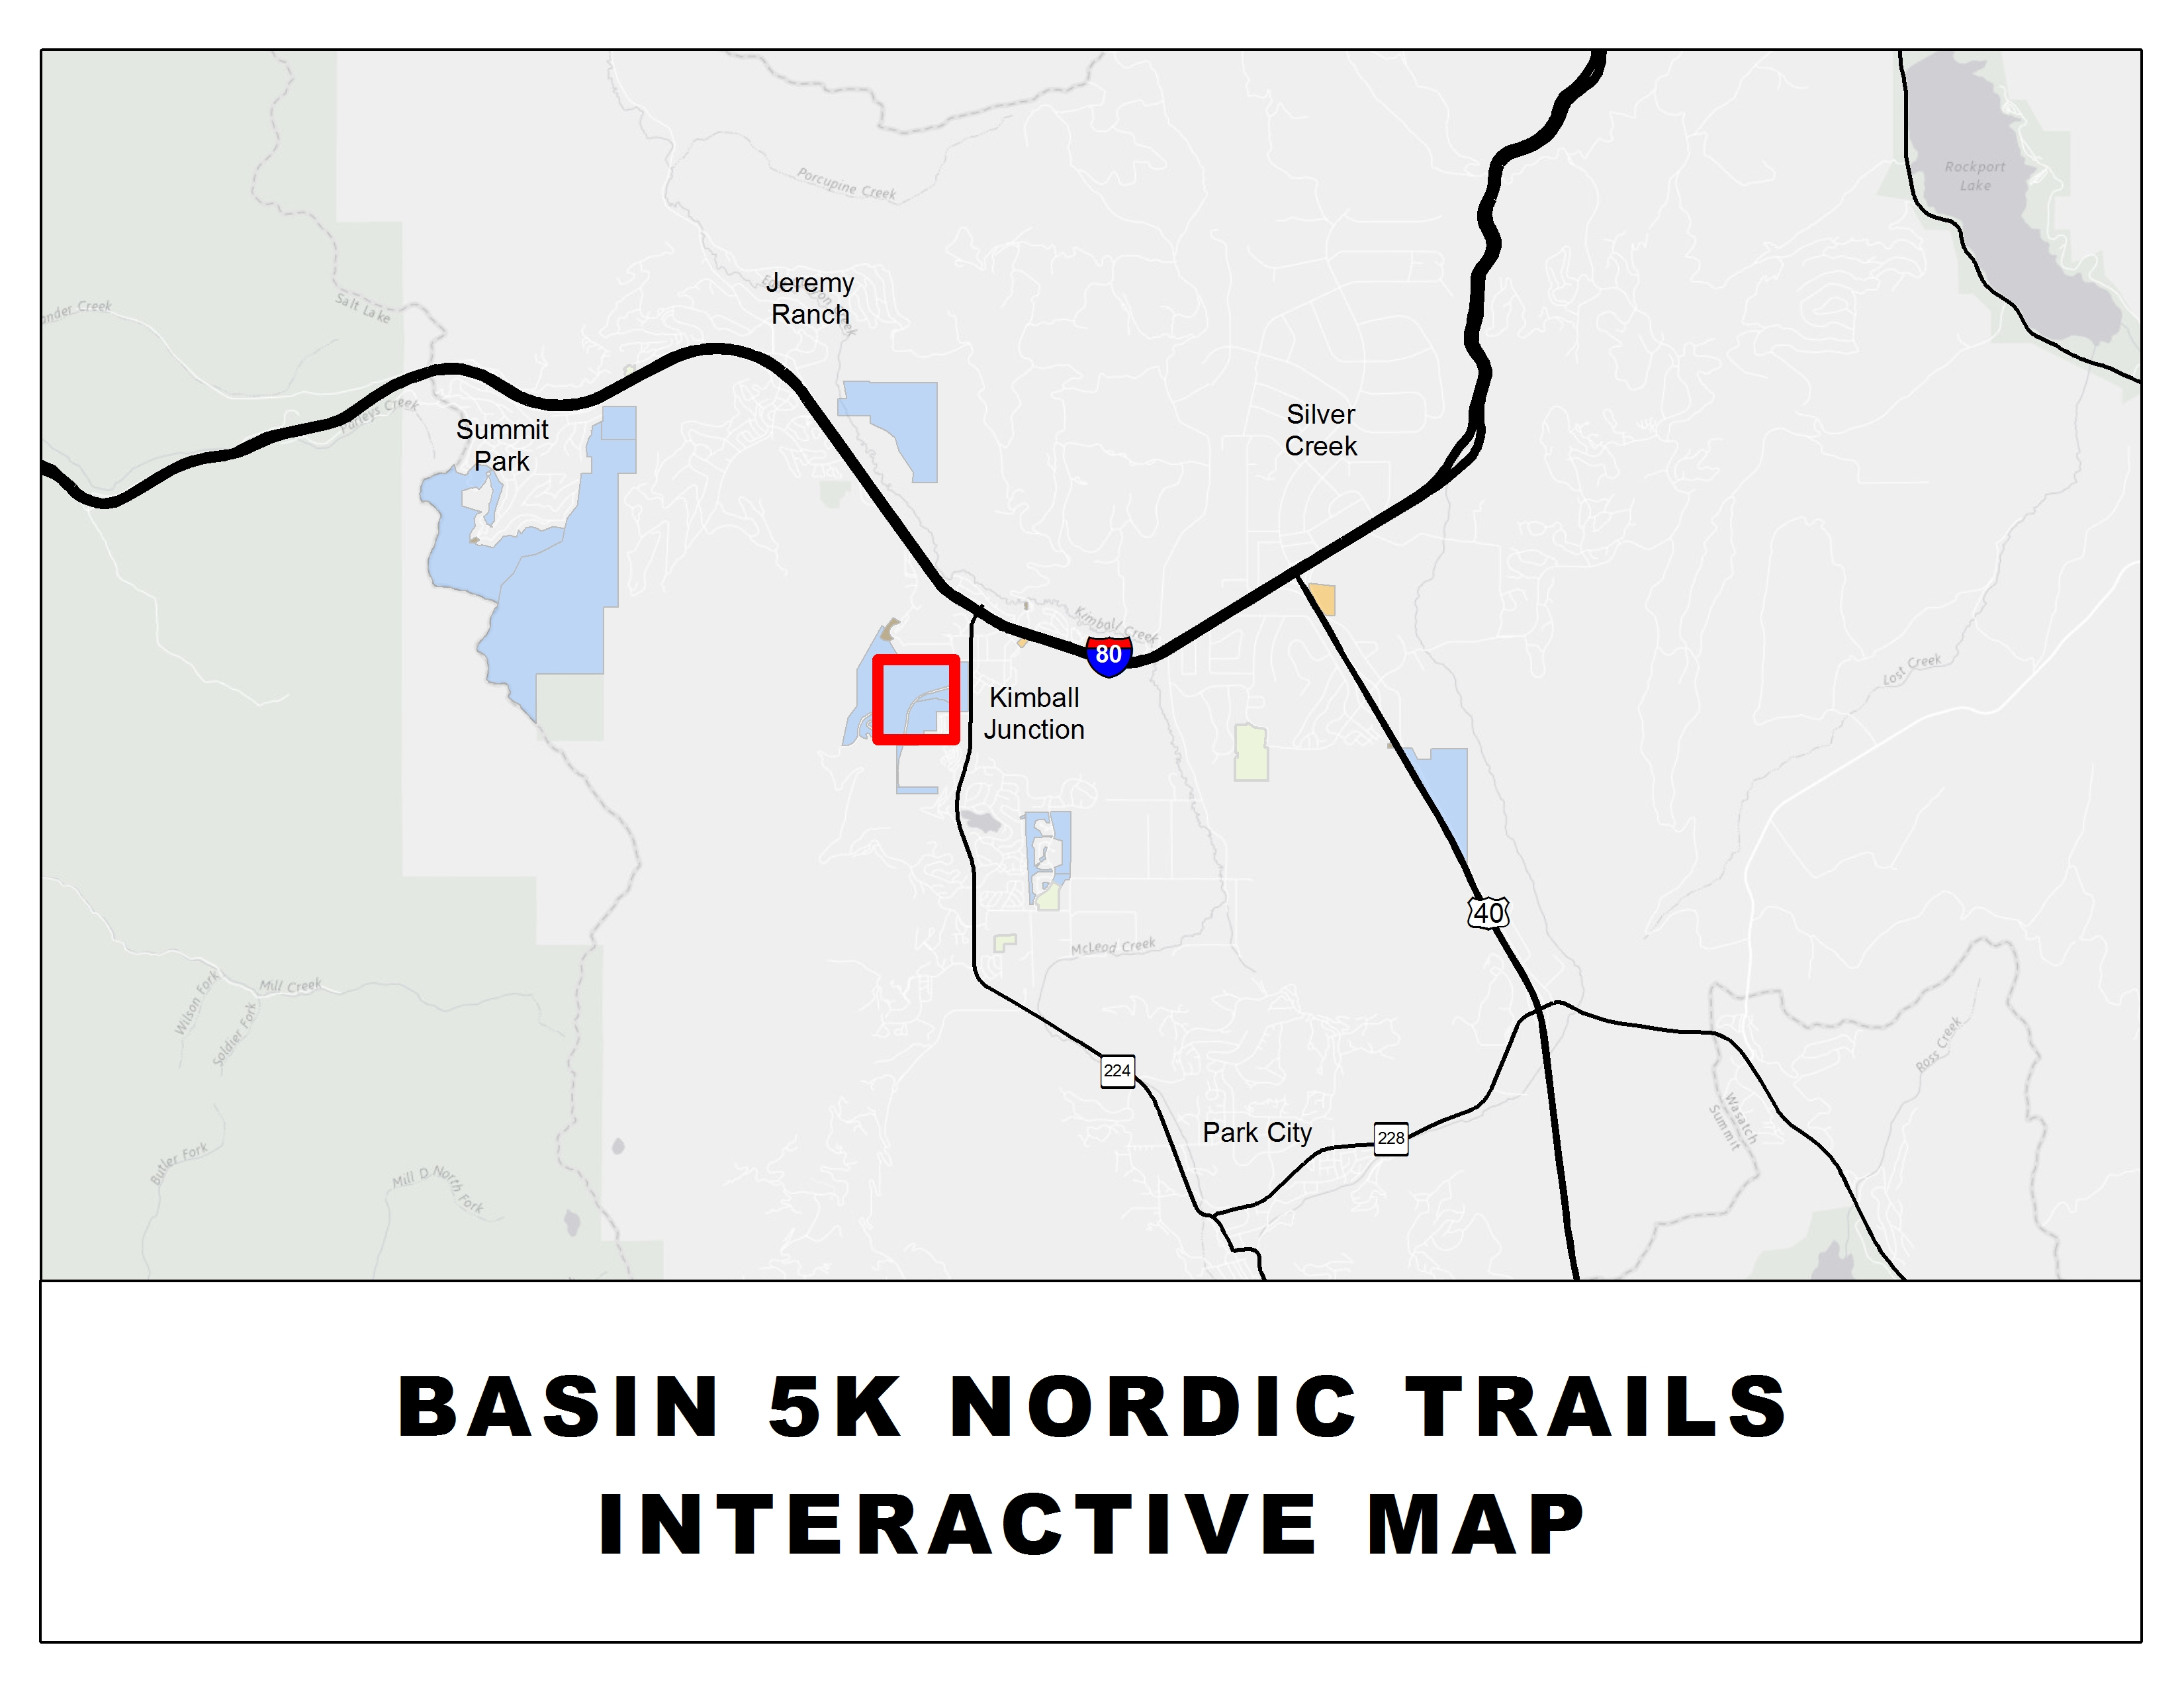 https://www.basinrecreation.org/wp-content/uploads/2017/07/Winter_Basin5K_Interactive.jpg